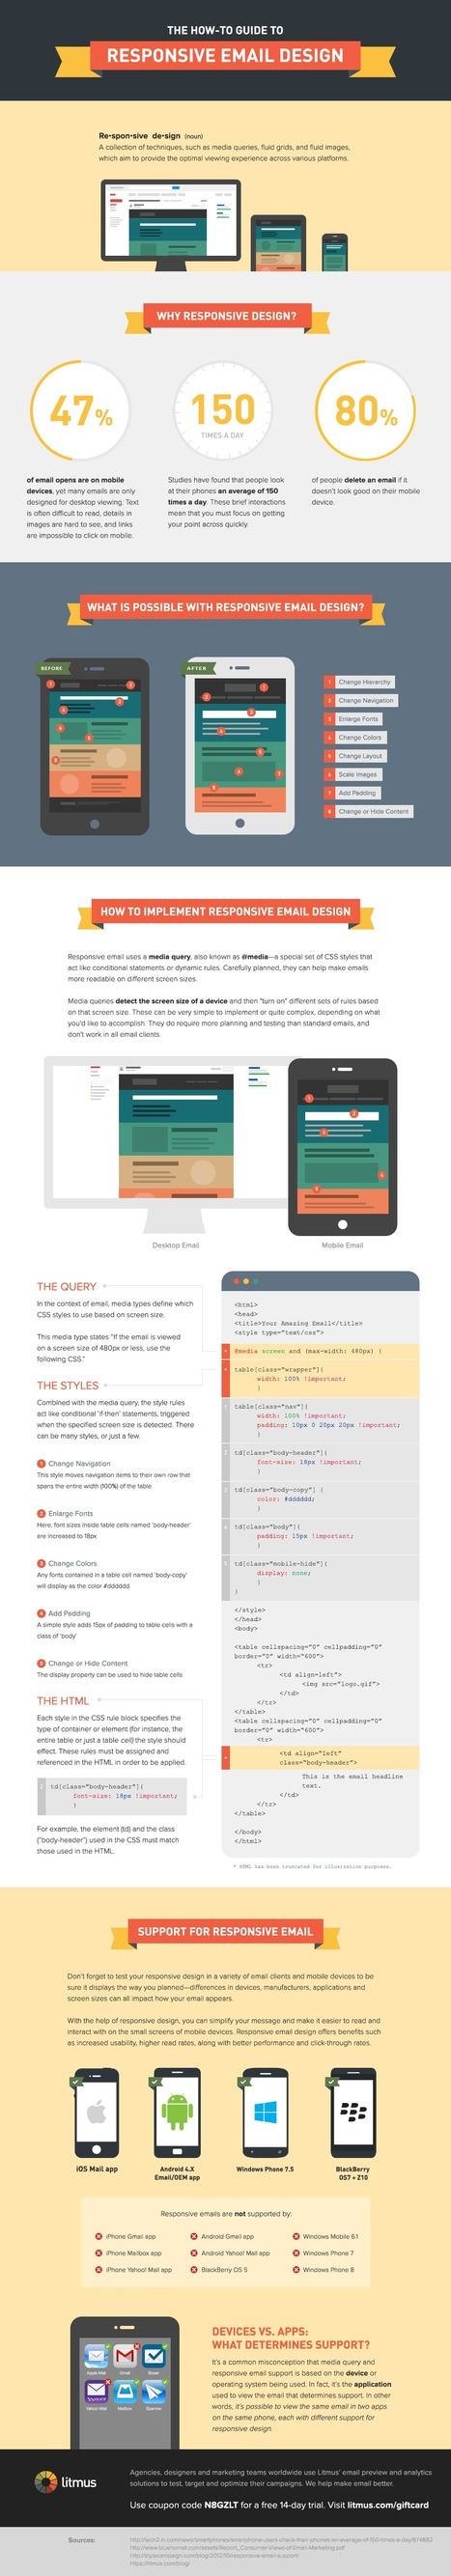 The How-To Guide to Responsive Email Design [Infographic] | Market to real people | Scoop.it